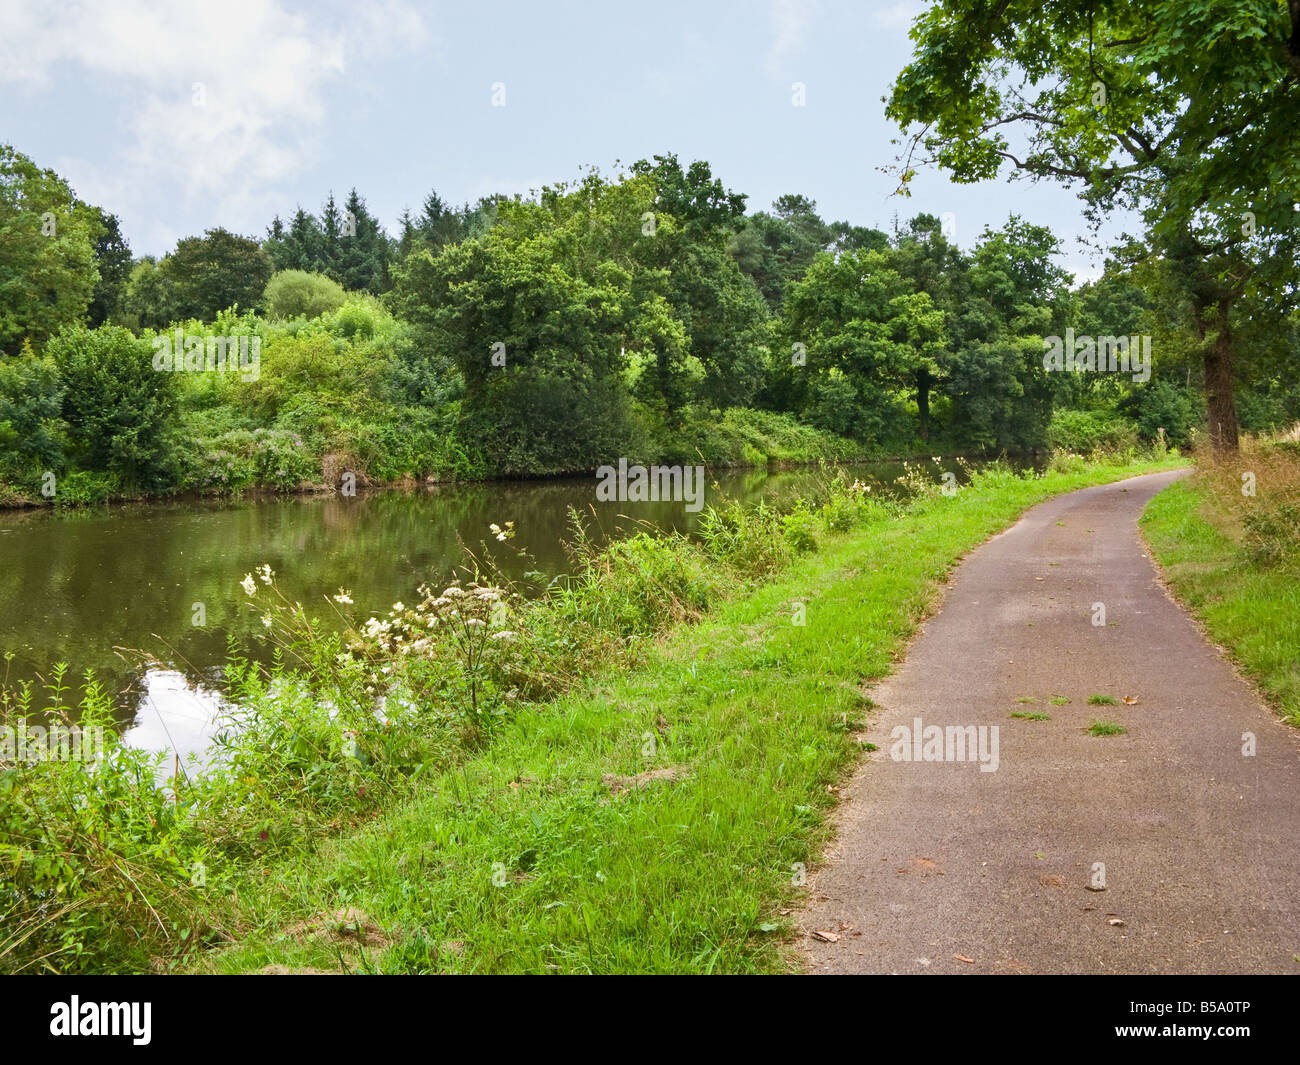 Towpath on the Nantes Brest Canal at Cadoret, Morbihan, Brittany, France, Europe - Stock Image